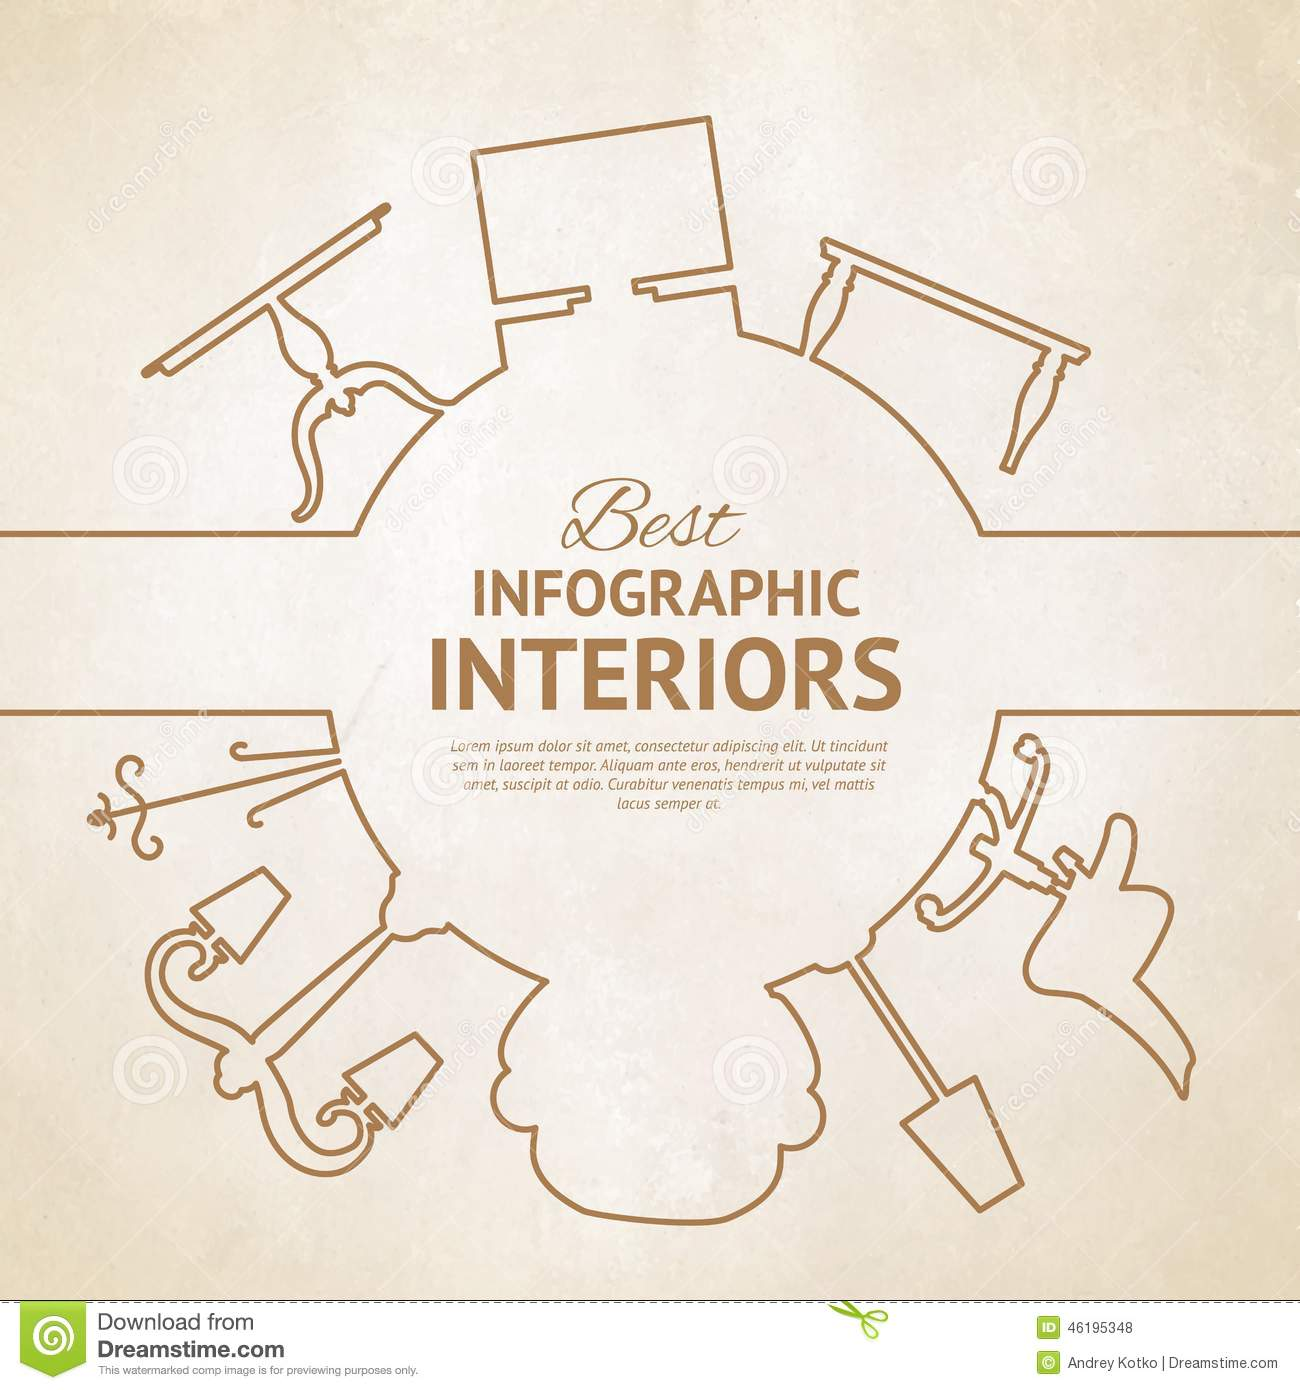 Interior Design Elements Line Style Infographics With Interior Design Elementsvector .